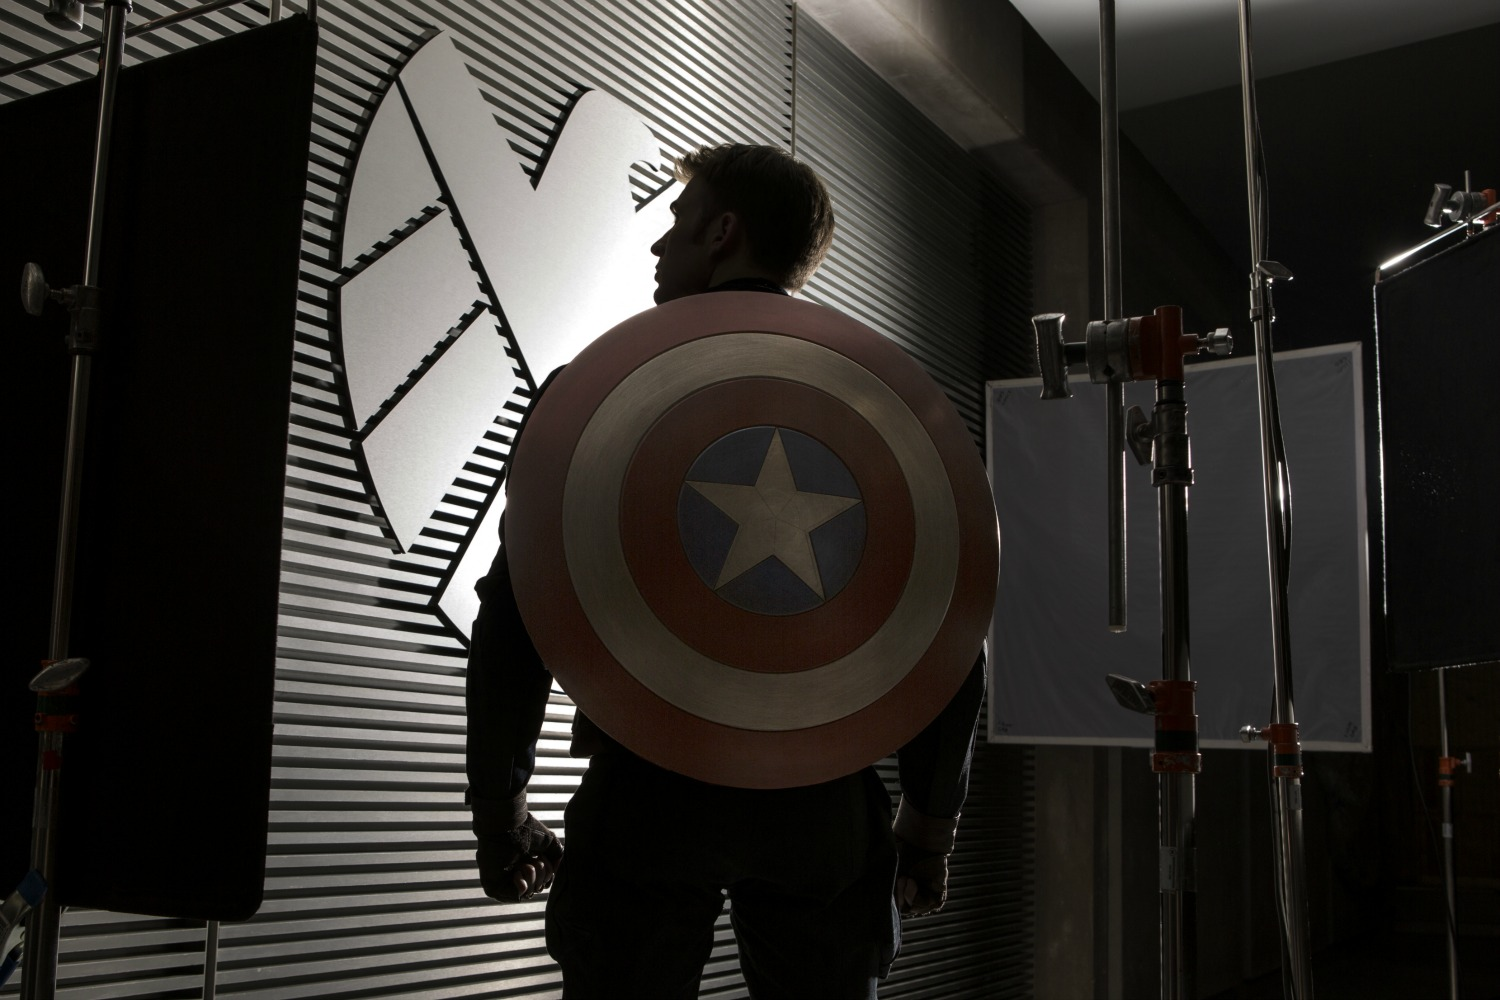 Marvel Studios Release Marvels The Avengers Production On Highly Anticipated Captain America Winter Soldier Has